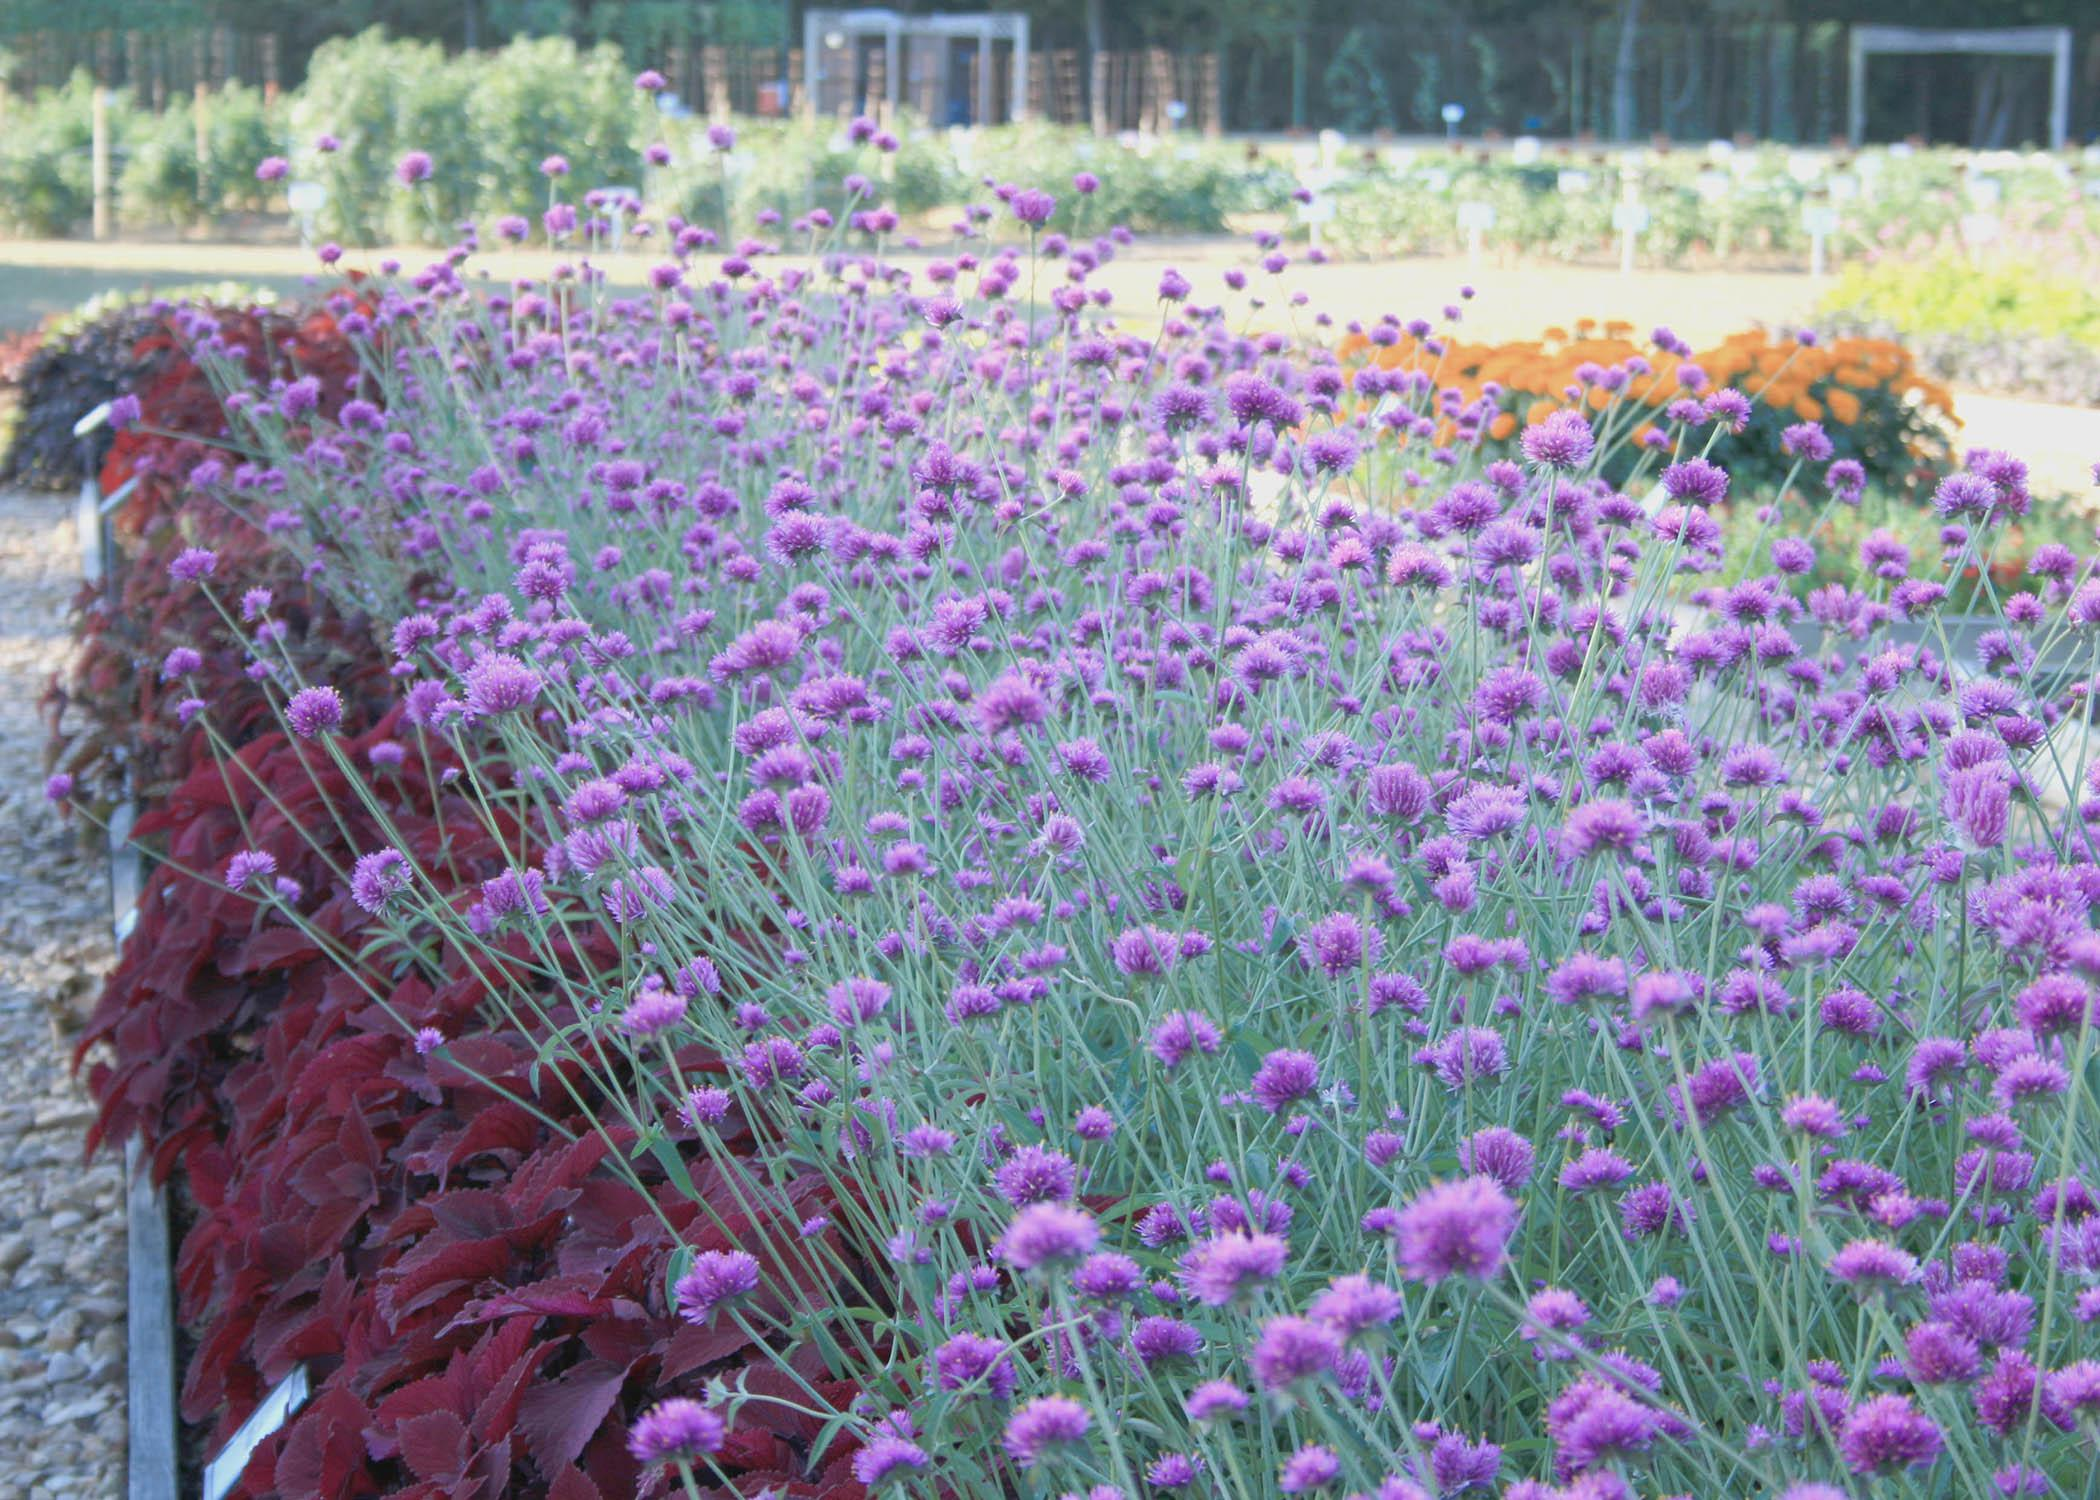 Fall-blooming flowers such as these Gomphrena Fireworks will be on display throughout the Fall Flower and Garden Fest Oct. 18-19 at Mississippi State University's Truck Crops Branch Experiment Station in Crystal Springs. (Photo by MSU Extension Service/Gary Bachman)